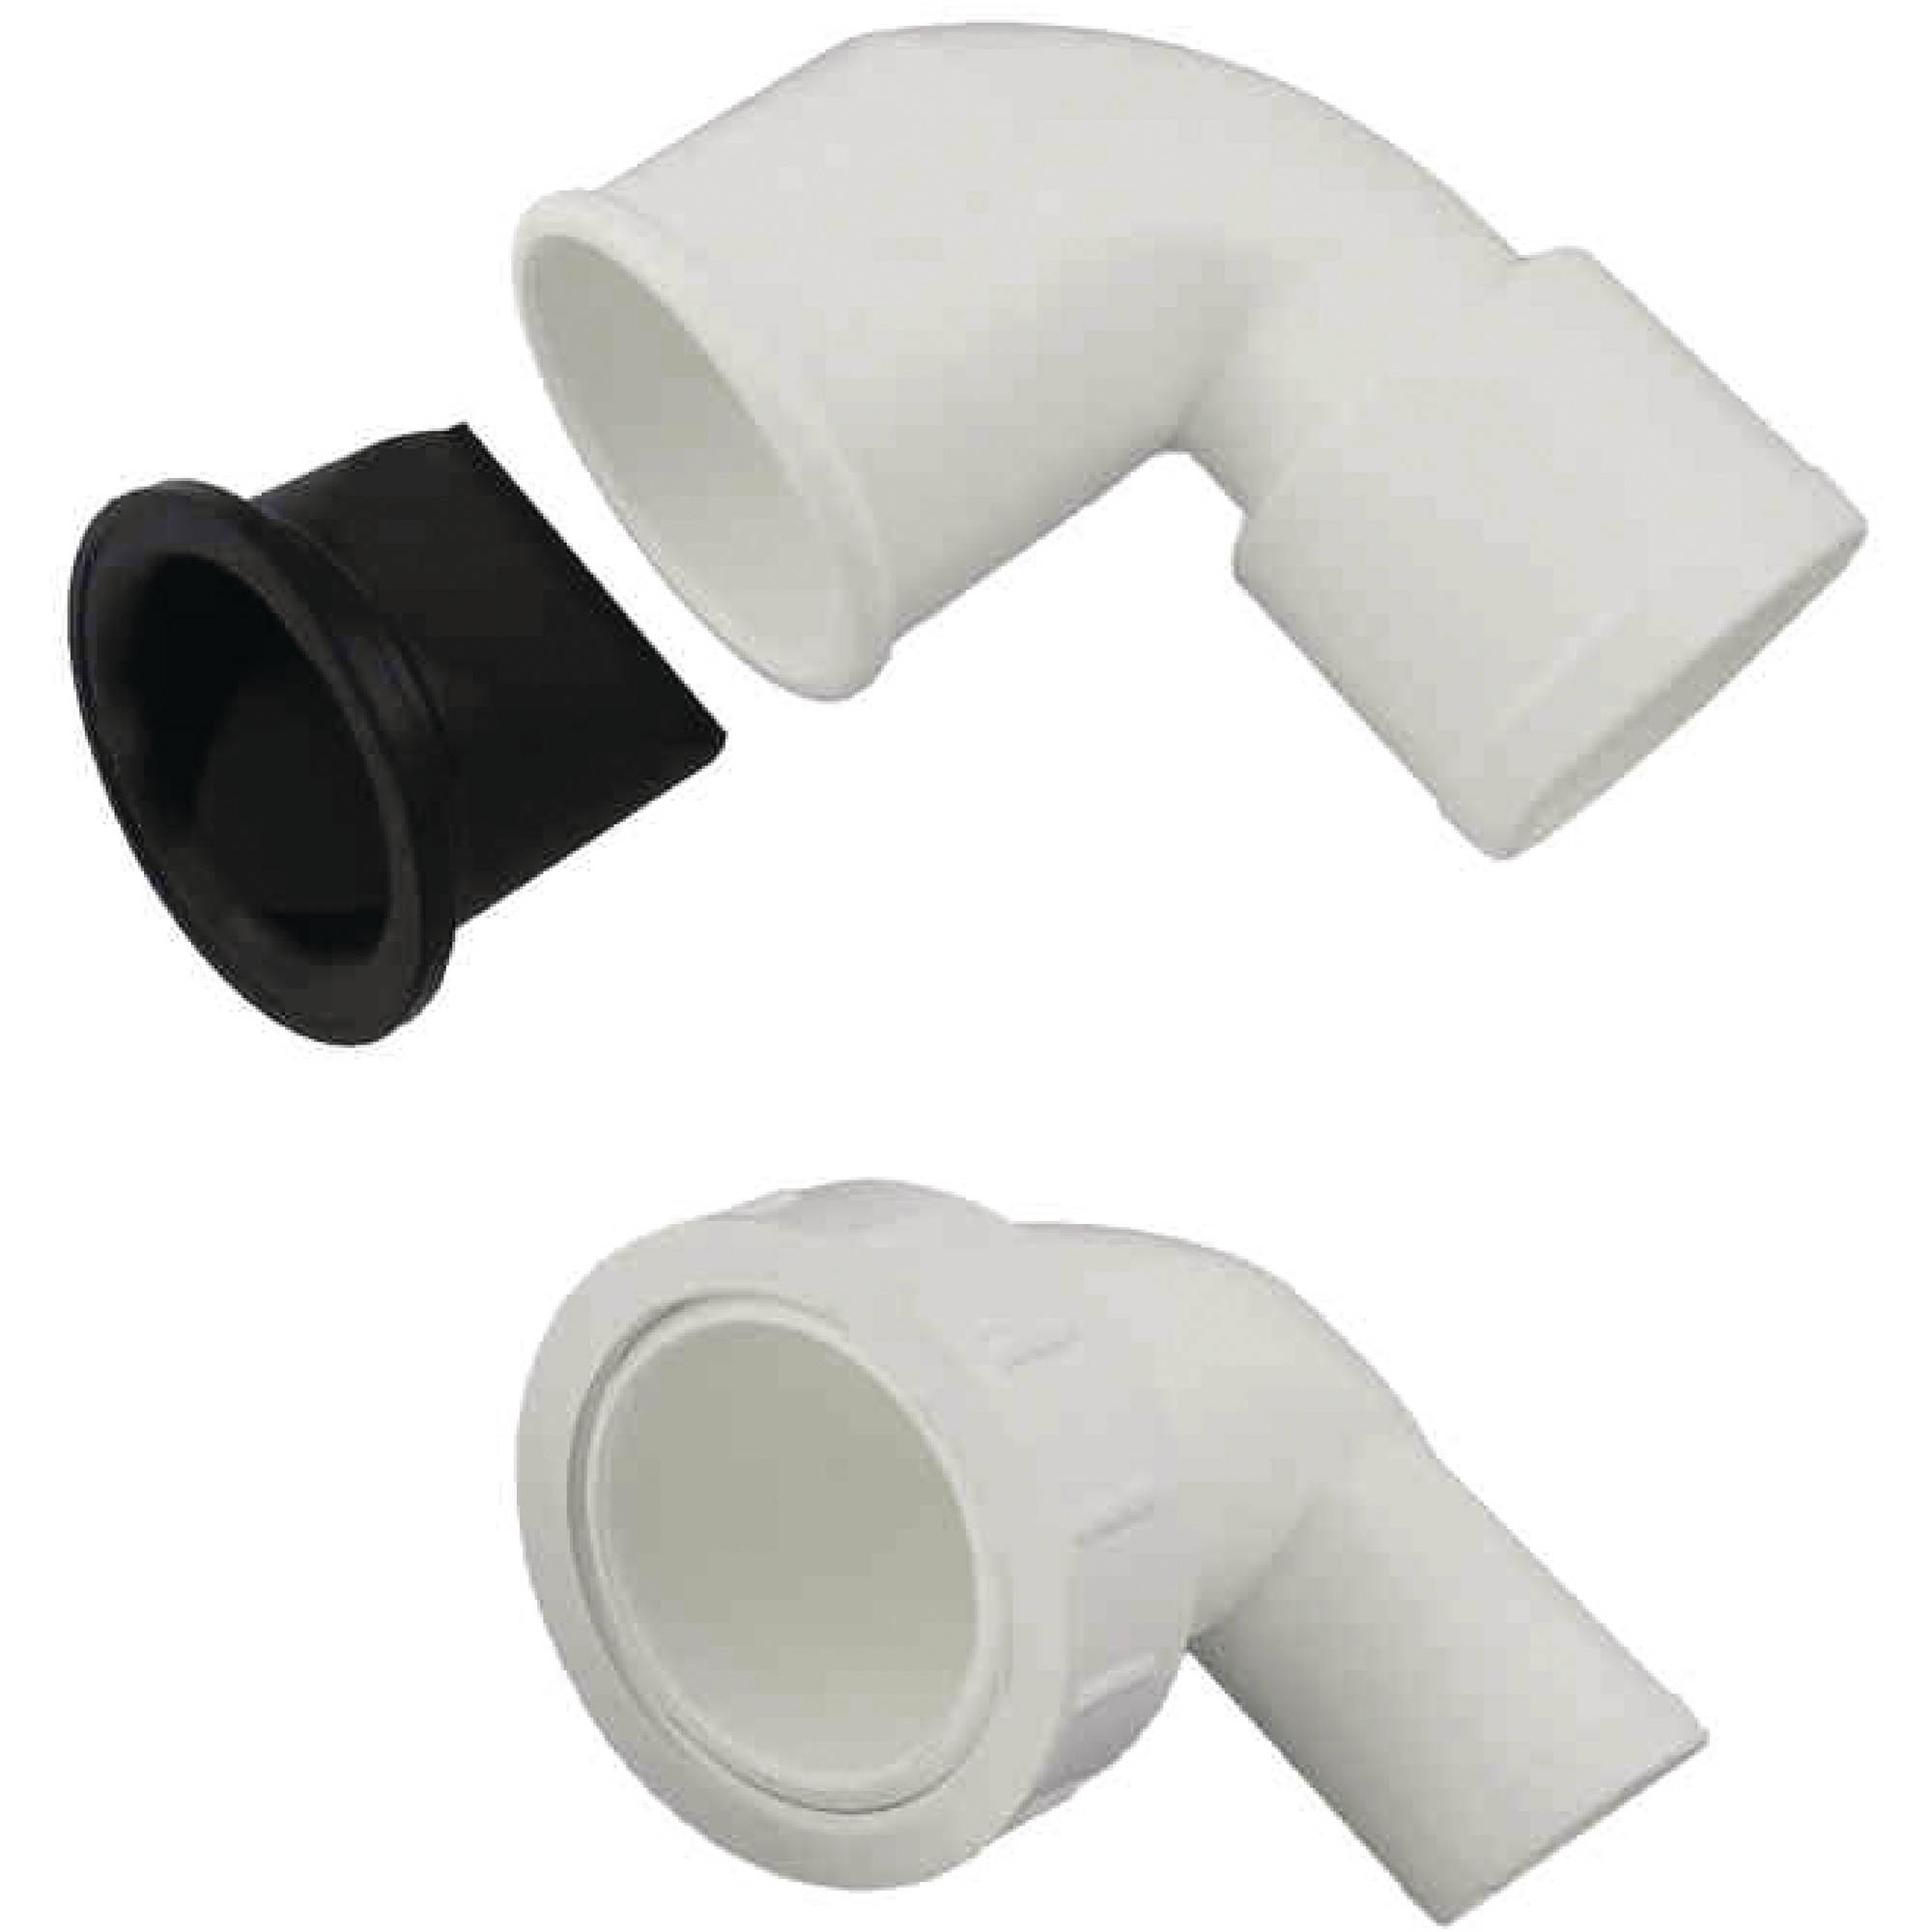 Johnson Pump 81-47273 Outlet Elbow For Silent and Premium Toilets by Johnson Pump